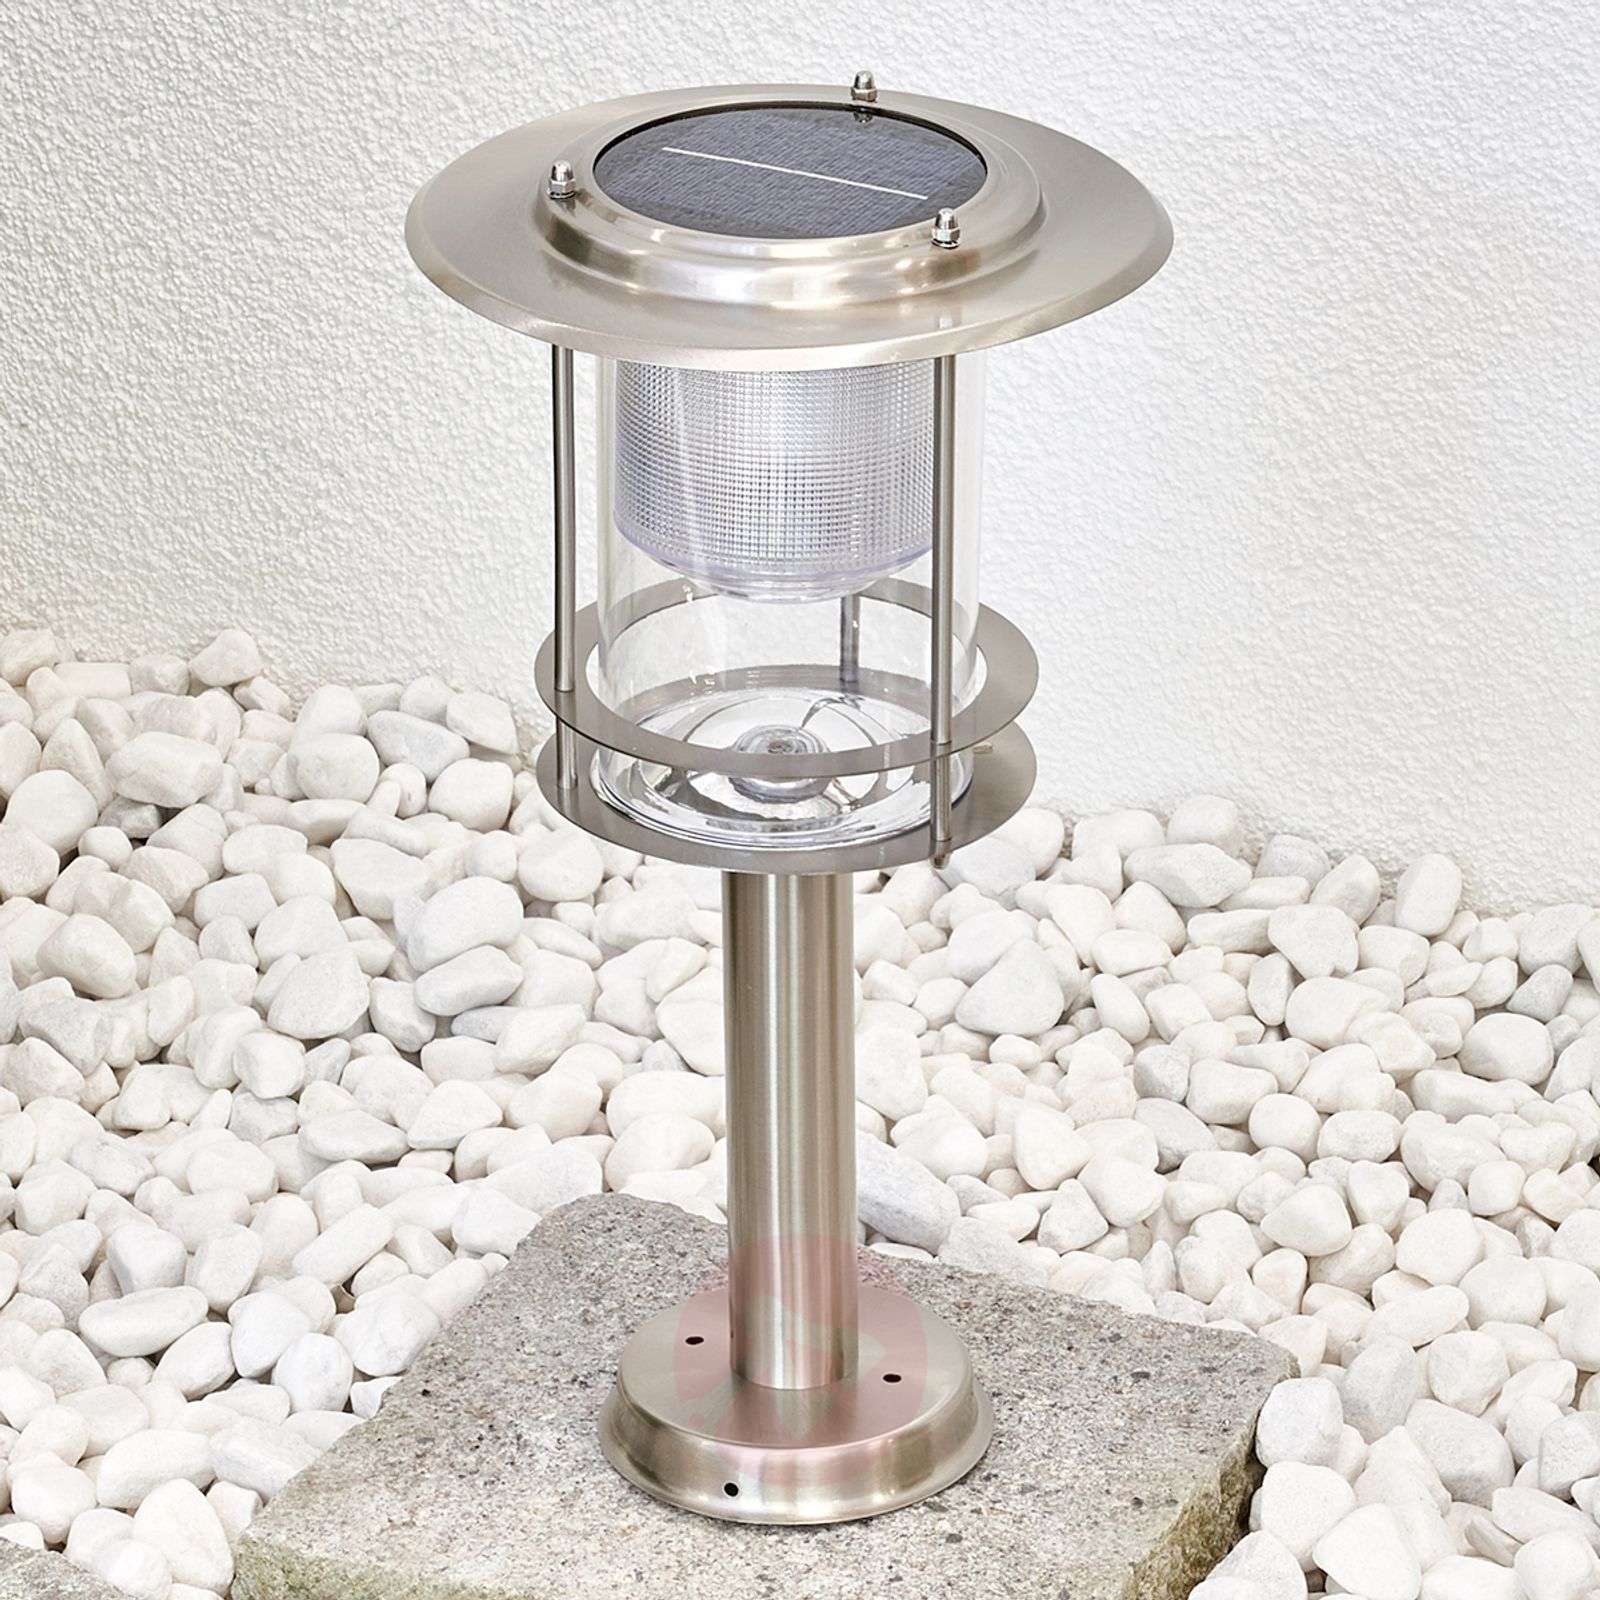 Stainless steel, solar LED pillar lamp Liss-9972002-01